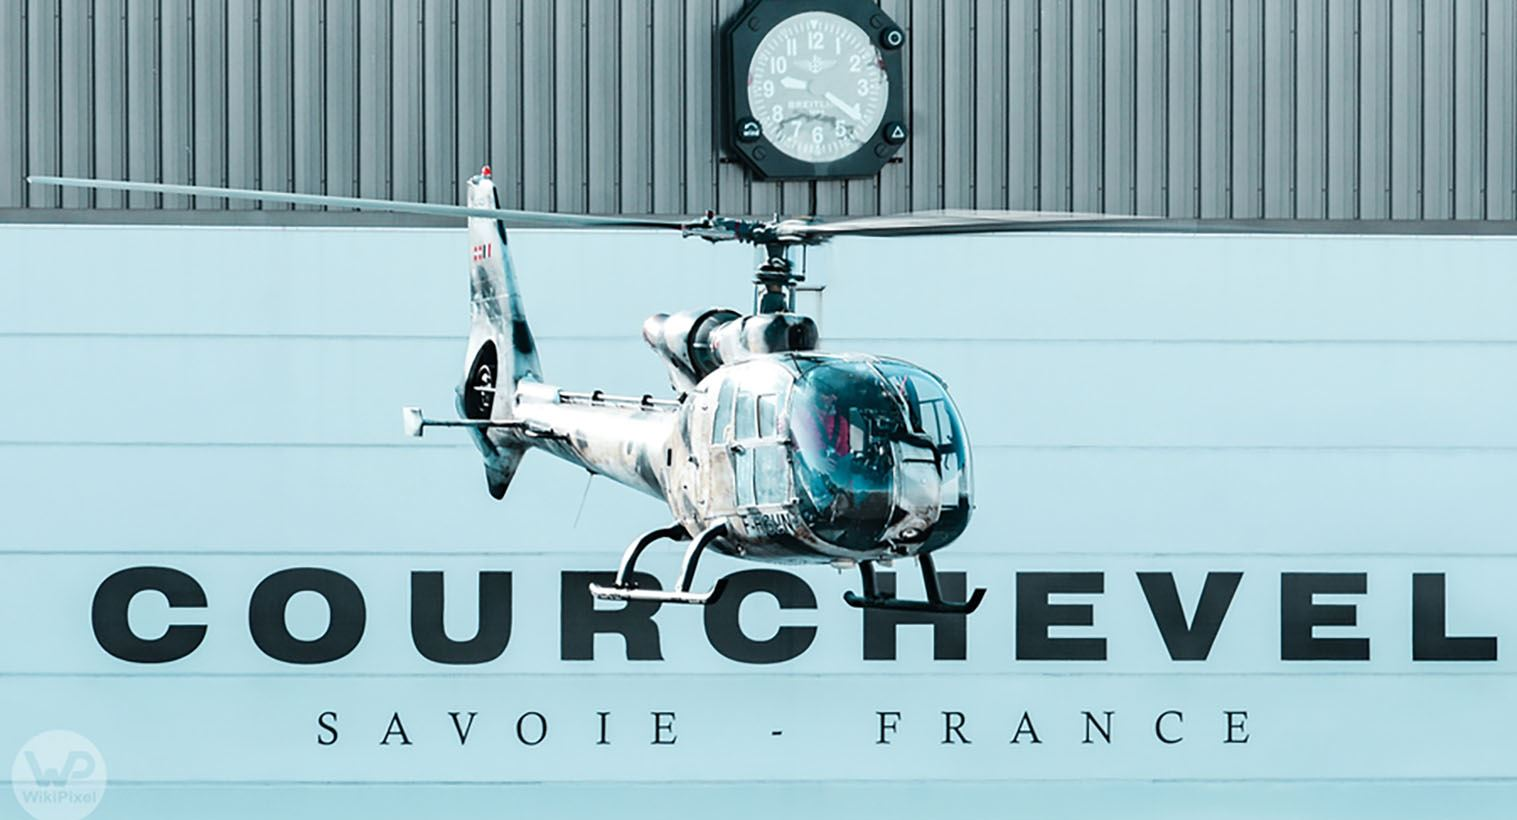 Fly Courchevel